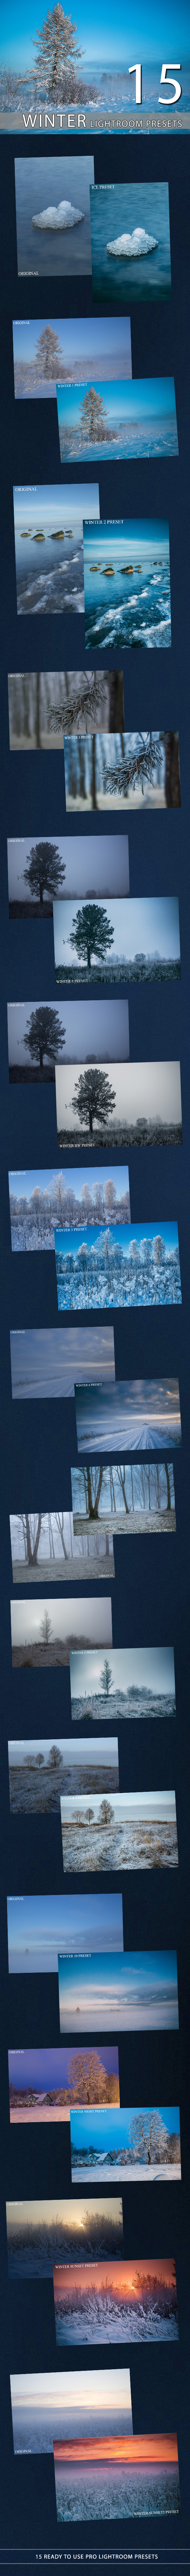 15 Winter Lightroom Premium Presets - Landscape Lightroom Presets